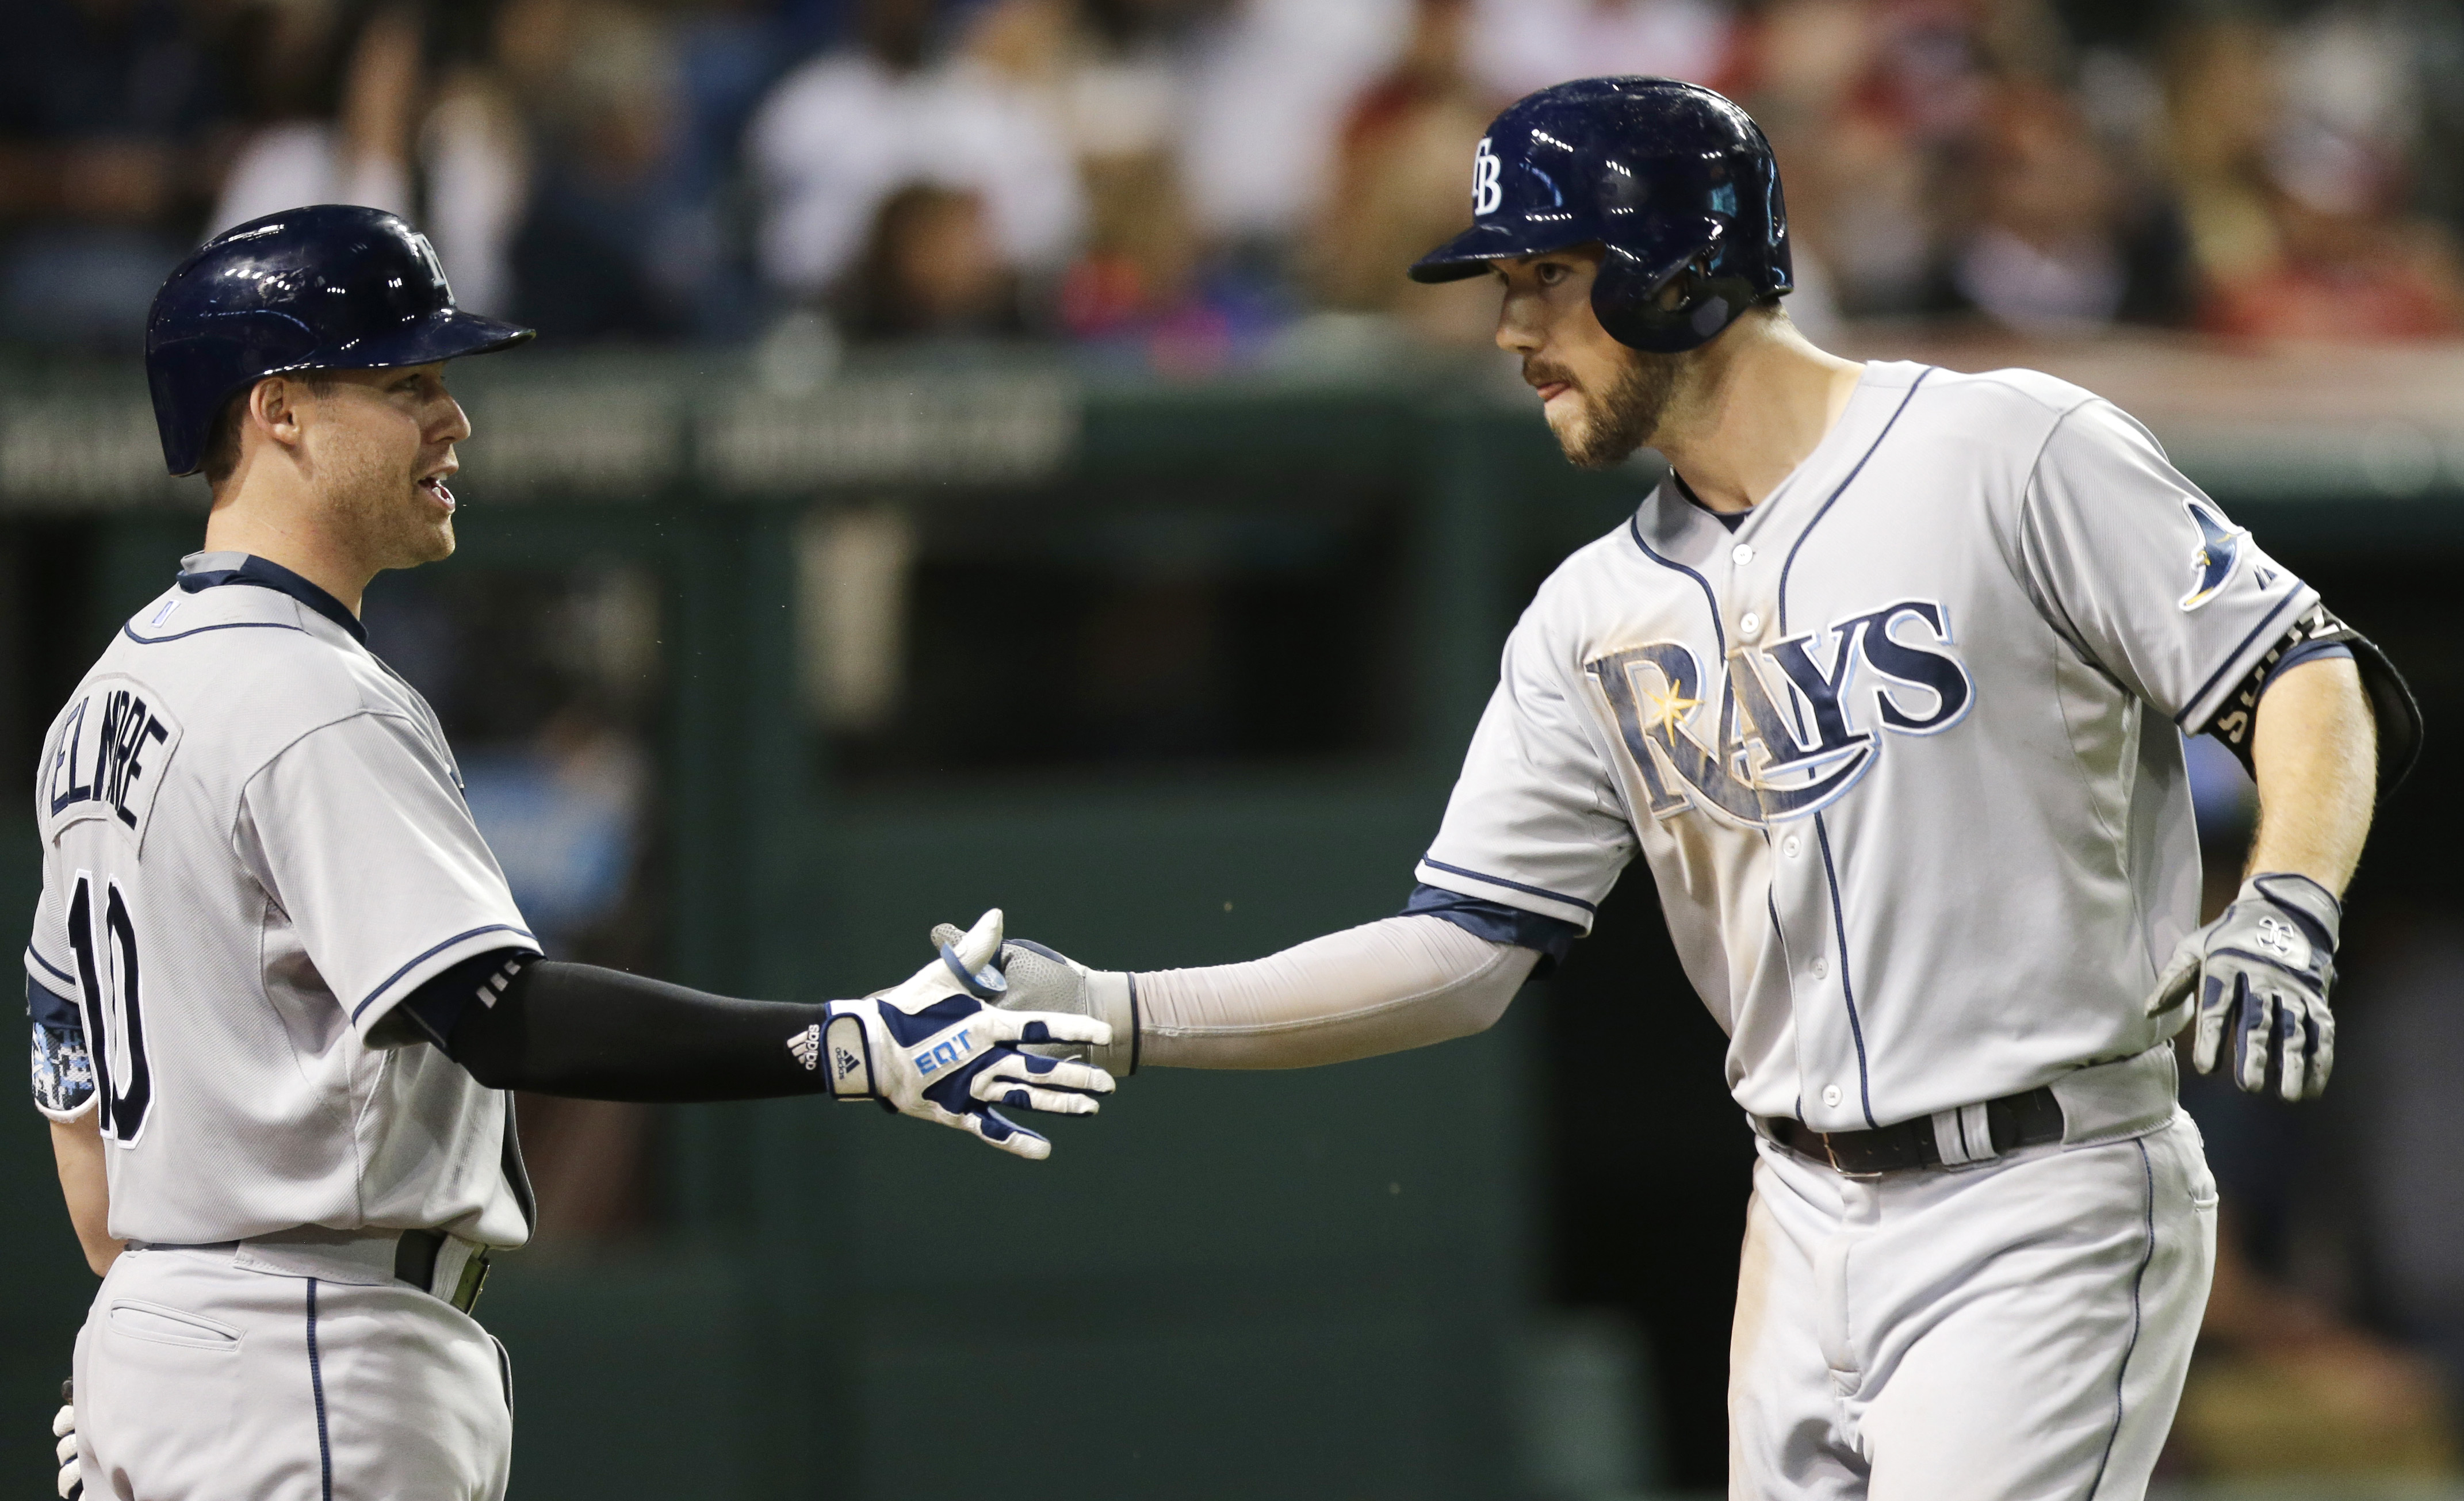 Tampa Bay Rays' Steven Souza Jr., right, is congratulated by Jake Elmore after Souza hit a solo home run off Cleveland Indians relief pitcher Scott Atchison in the ninth inning of a baseball game, Friday, June 19, 2015, in Cleveland. (AP Photo/Tony Dejak)